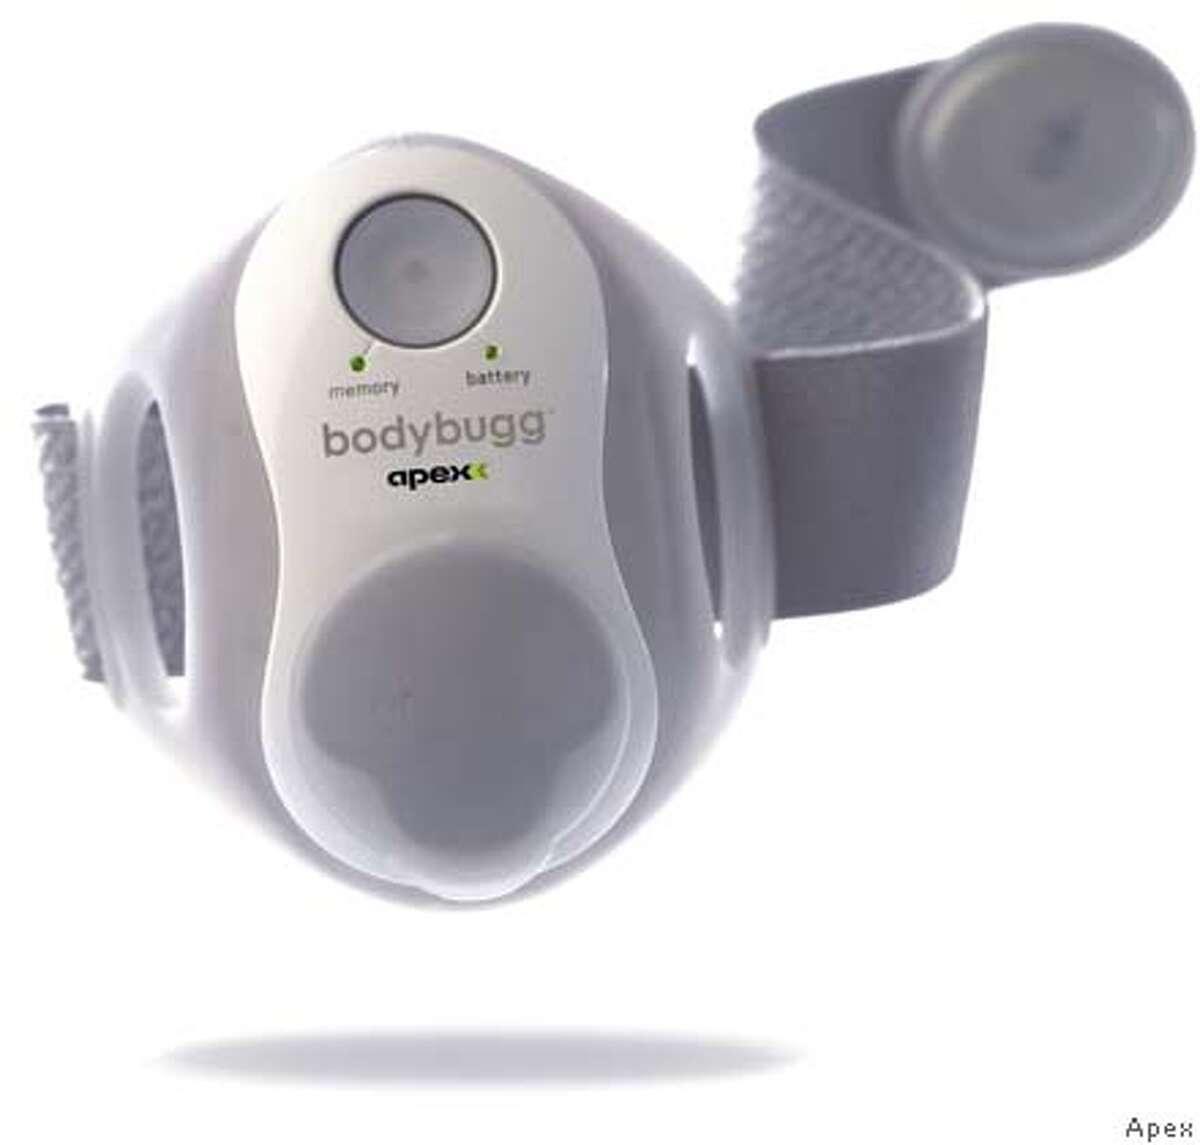 BodyBugg photo for Monday's tech page on products to help you keep your New Year's resolution. Apex /